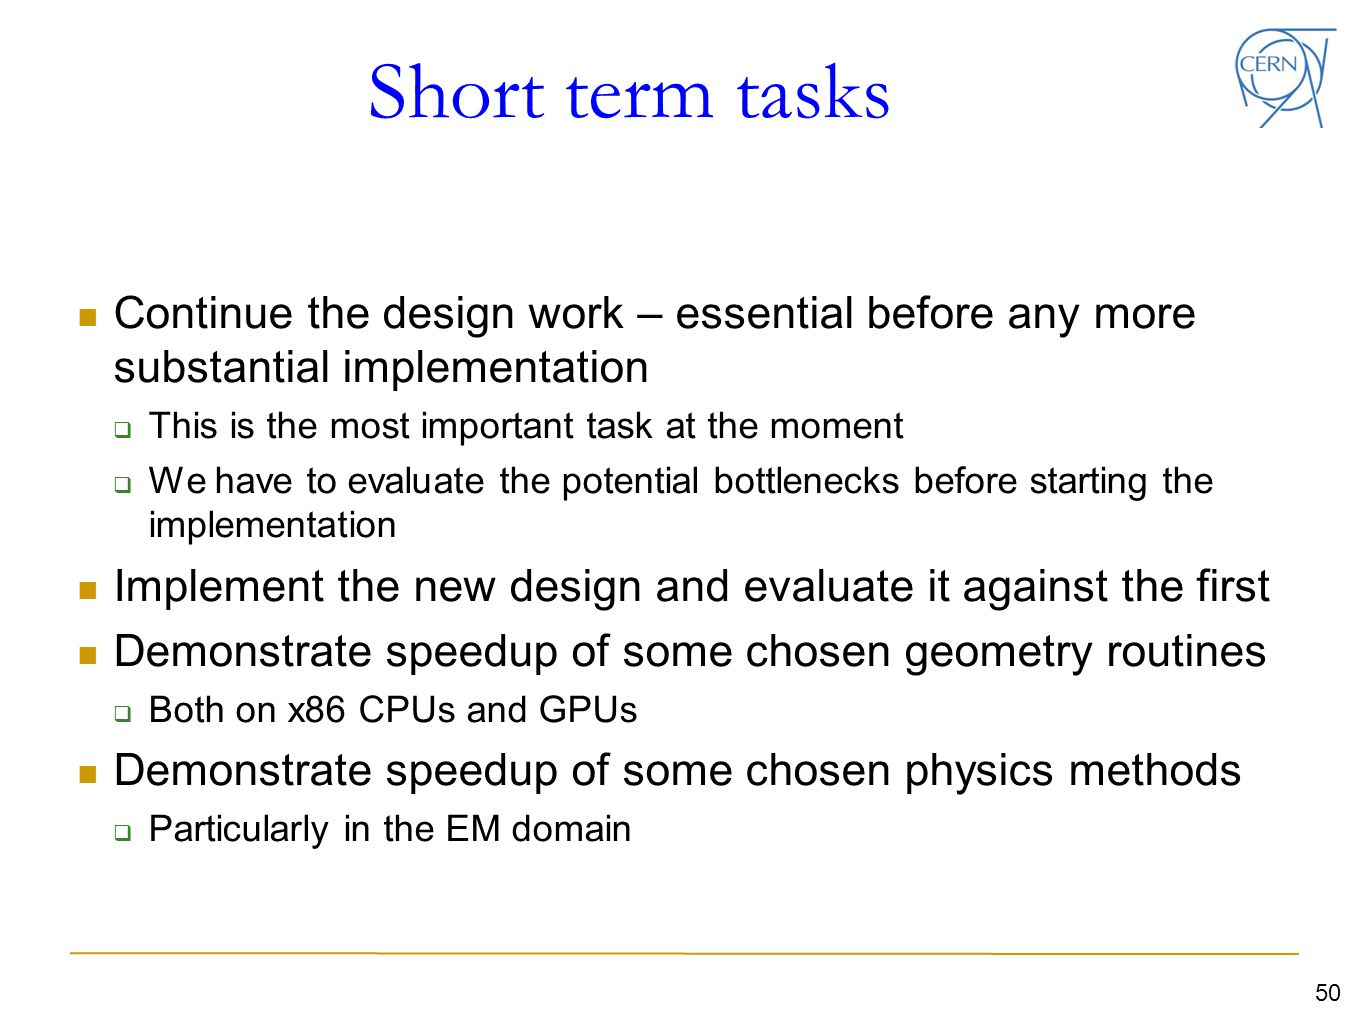 50 Short term tasks Continue the design work – essential before any more substantial implementation  This is the most important task at the moment  We have to evaluate the potential bottlenecks before starting the implementation Implement the new design and evaluate it against the first Demonstrate speedup of some chosen geometry routines  Both on x86 CPUs and GPUs Demonstrate speedup of some chosen physics methods  Particularly in the EM domain